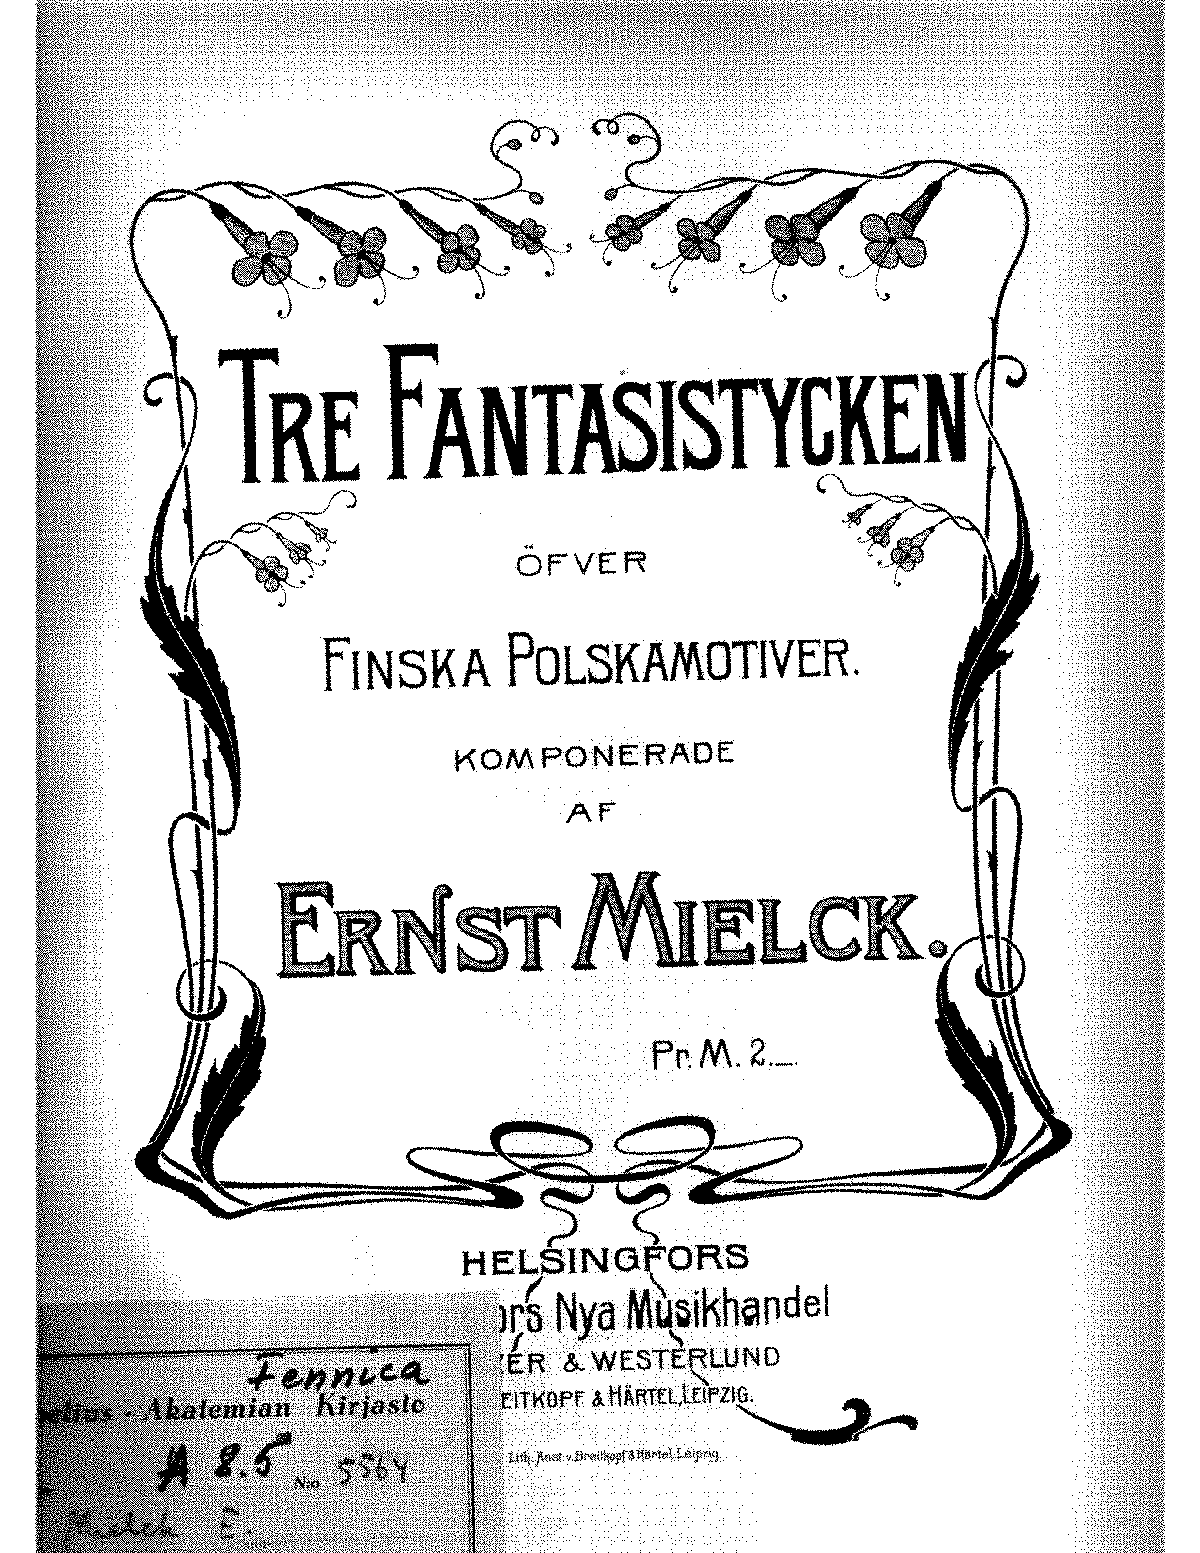 Mielck - 3 Fantasy Pieces on Finnish Polska Motifs.pdf